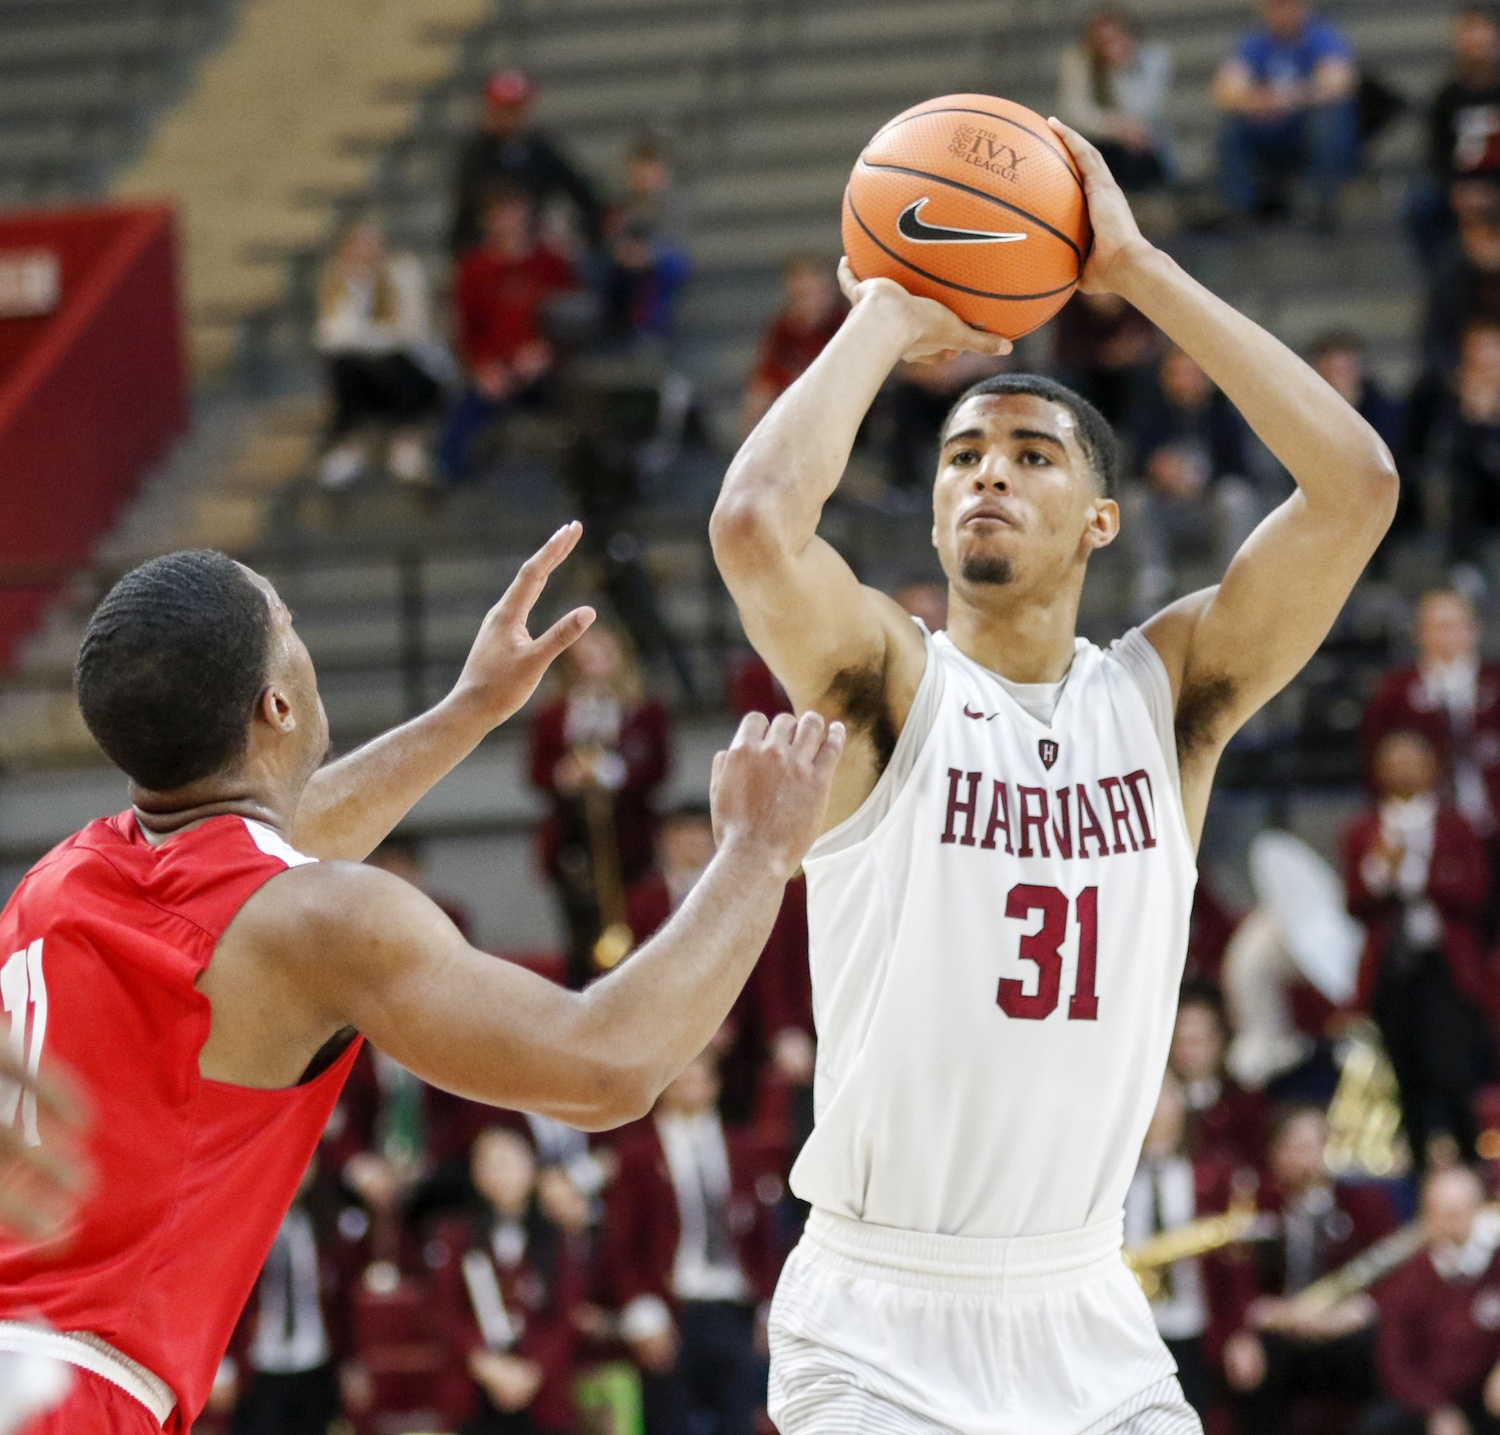 Junior Seth Towns, the reigning Ivy League Player of the Year, averaged 16.0 points per game last season.